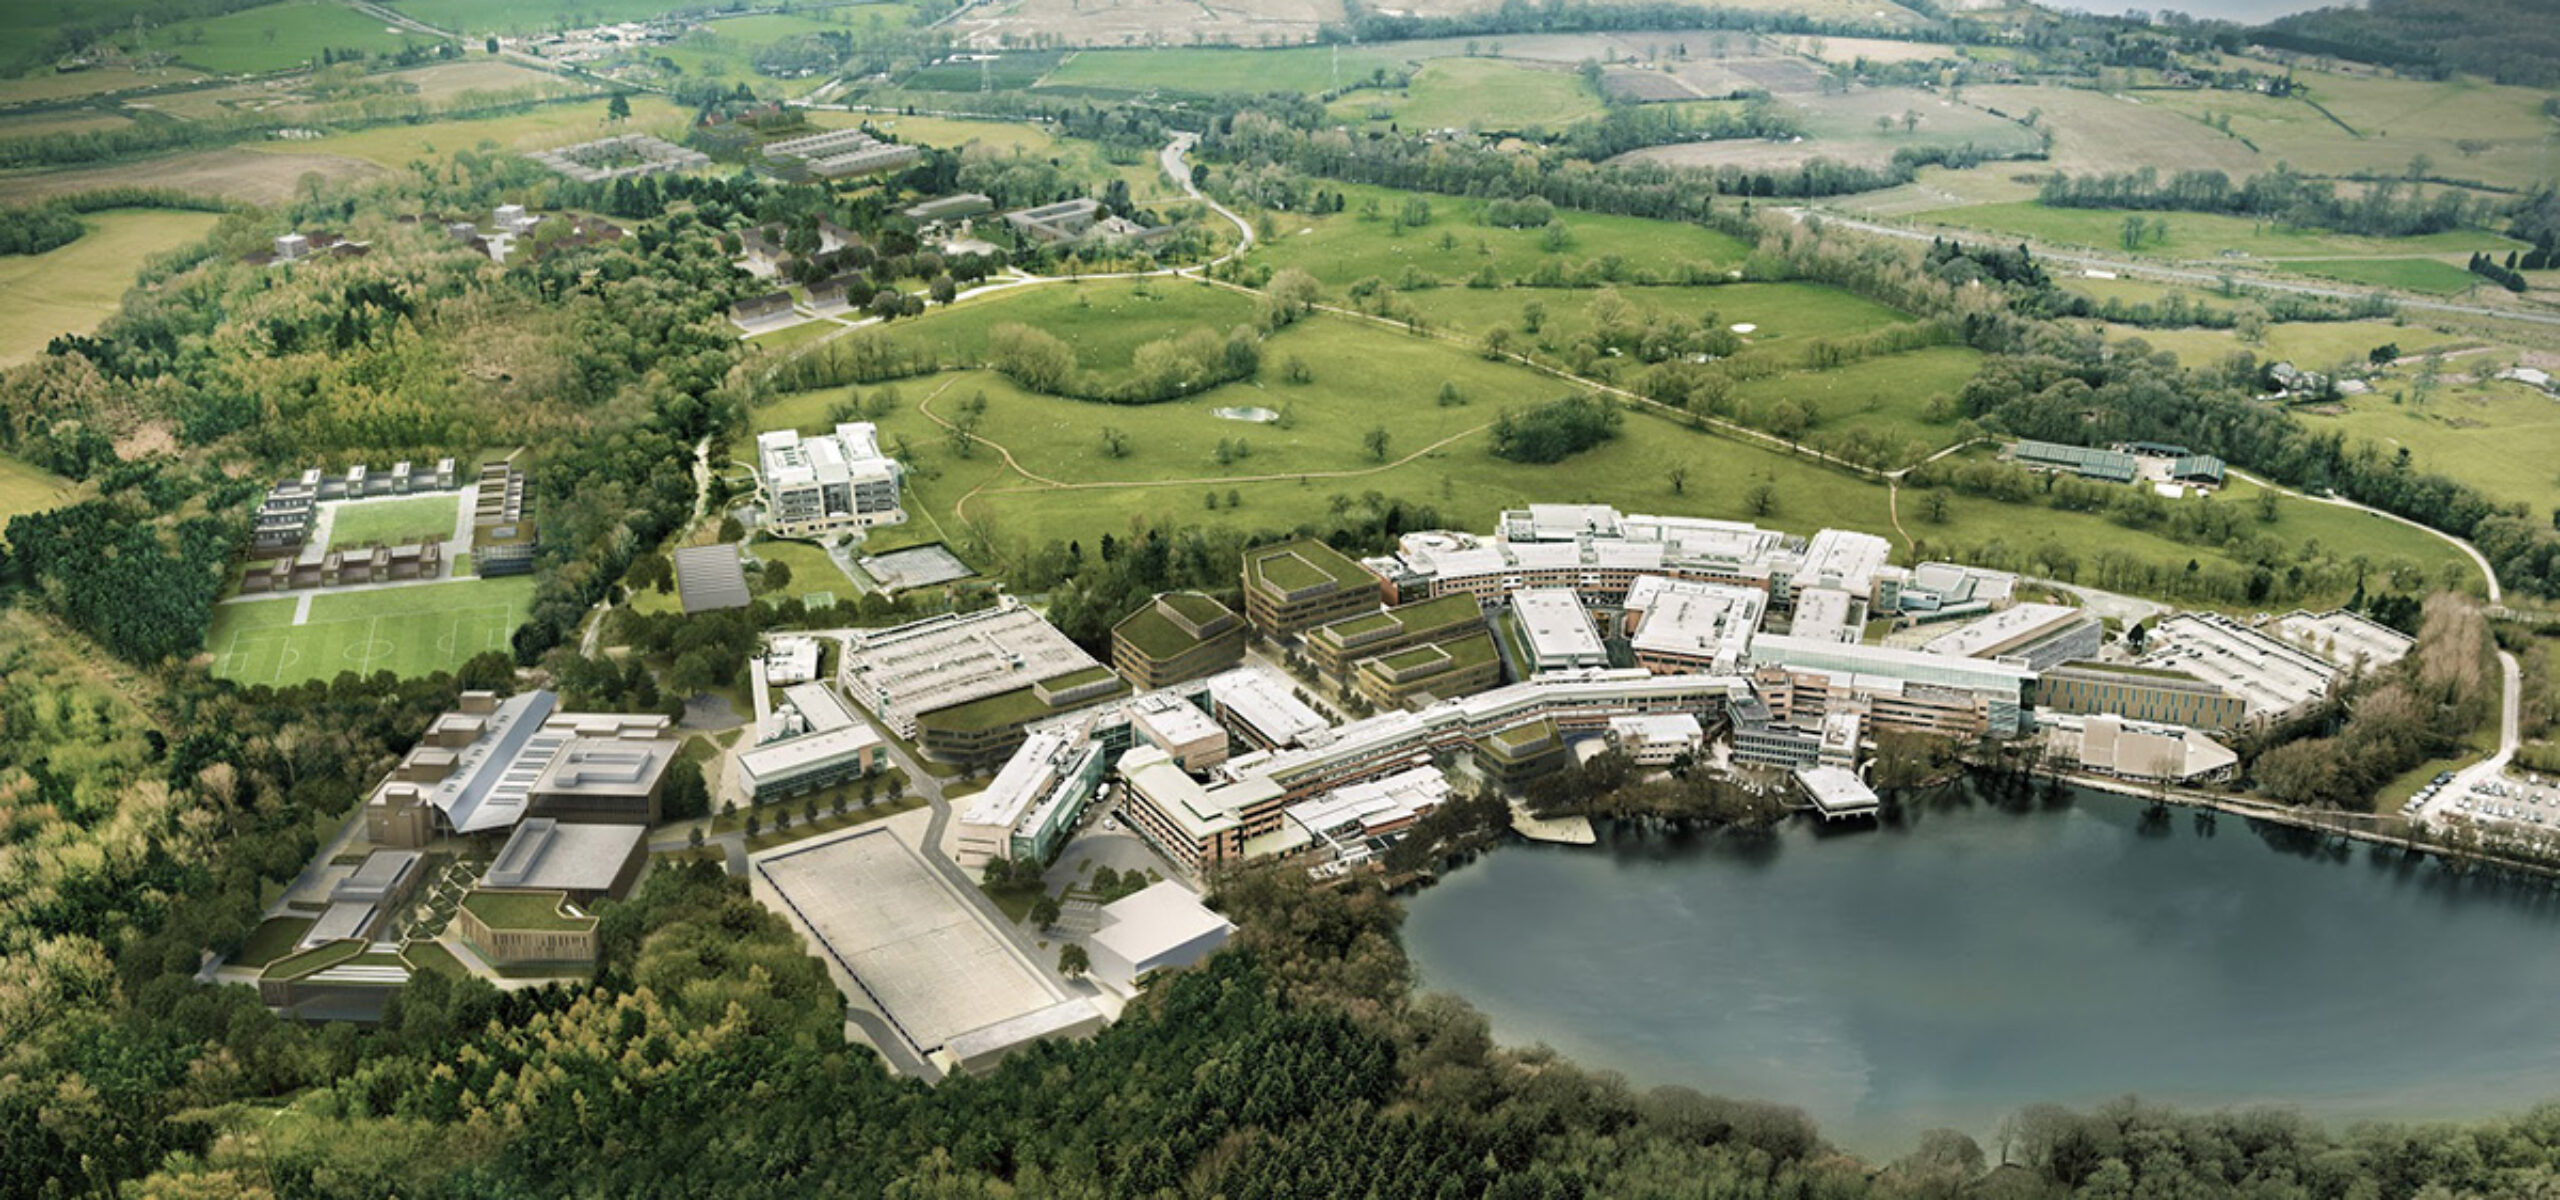 Aerial overview of Alderley Park, current home to the Cancer Research UK Manchester Institute